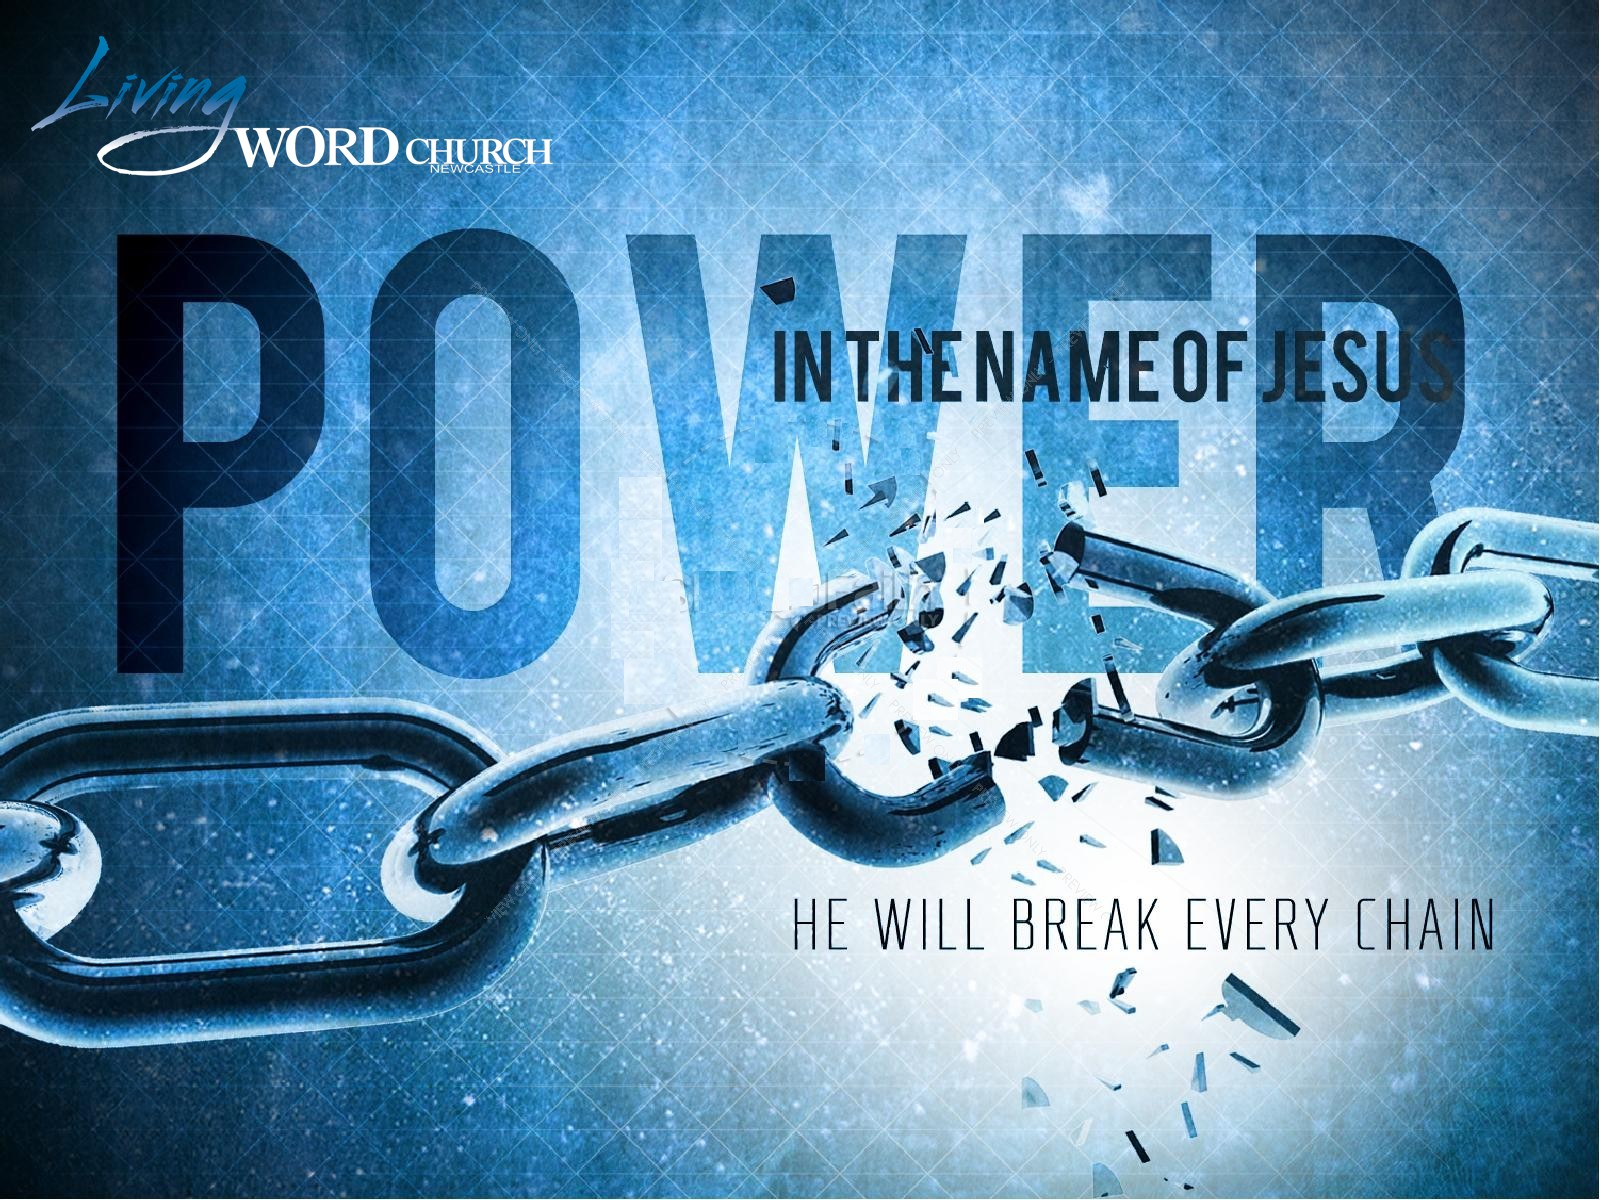 Power in the Name of Jesus (Part 2)